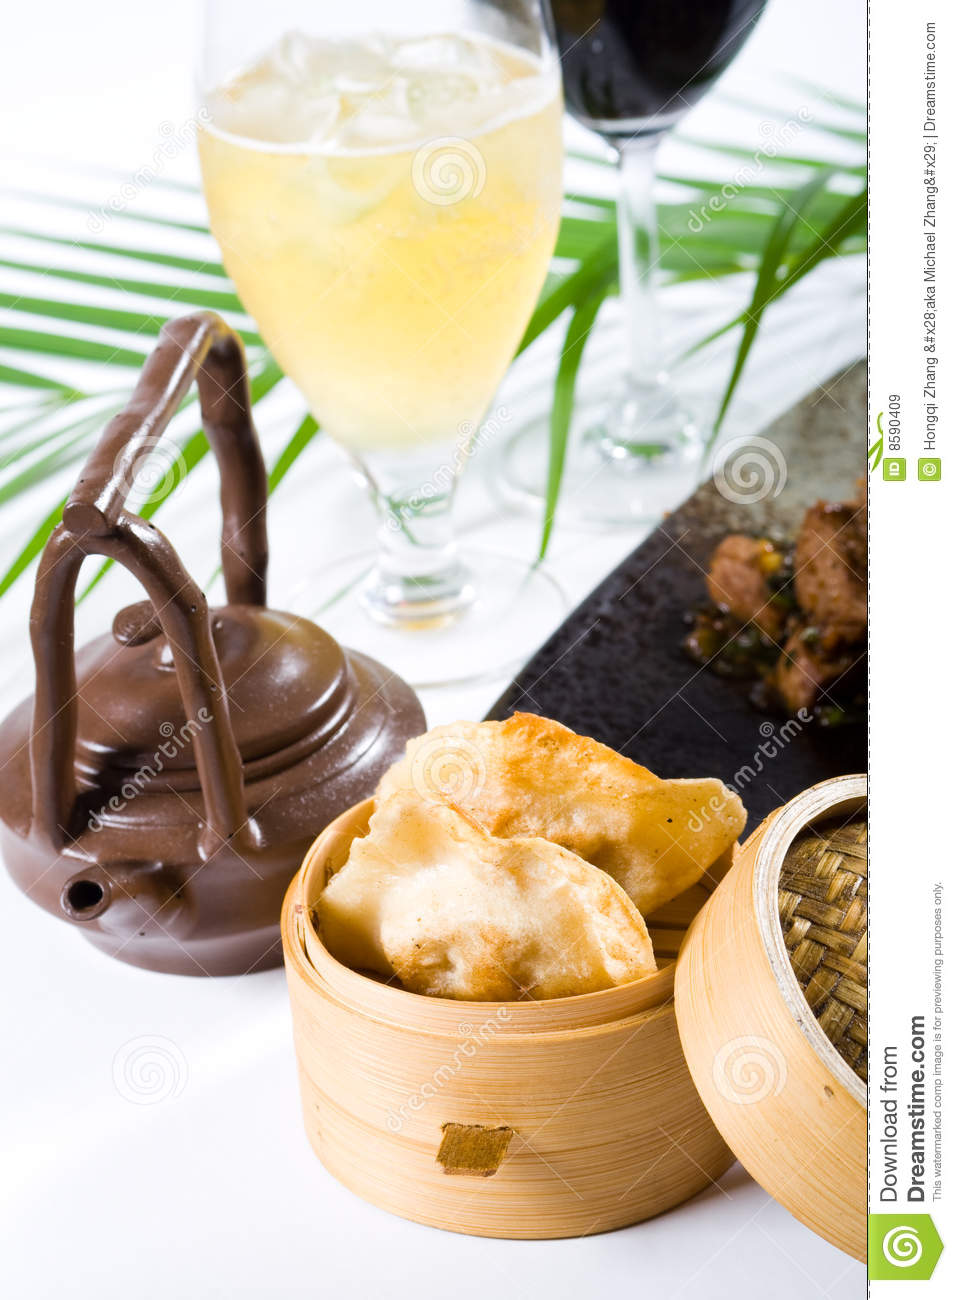 Chinese cuisine and tea royalty free stock images image for Ajk chinese cuisine